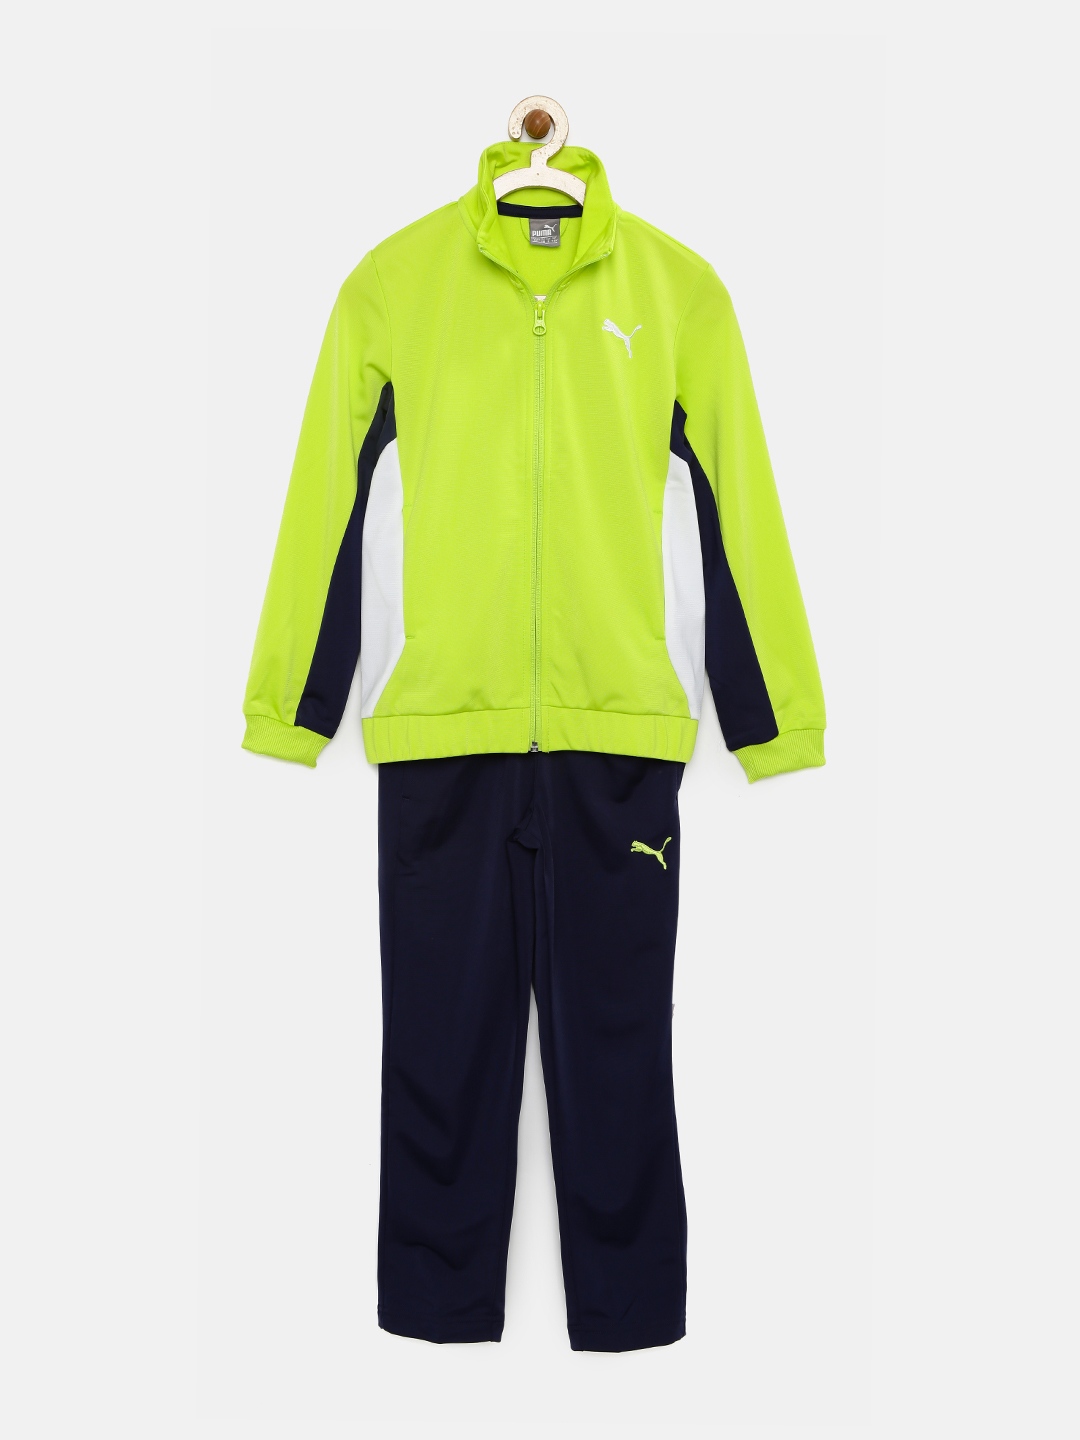 PUMA Boys Flourescent Green & Navy Polyester ACTIVE Tracksuit